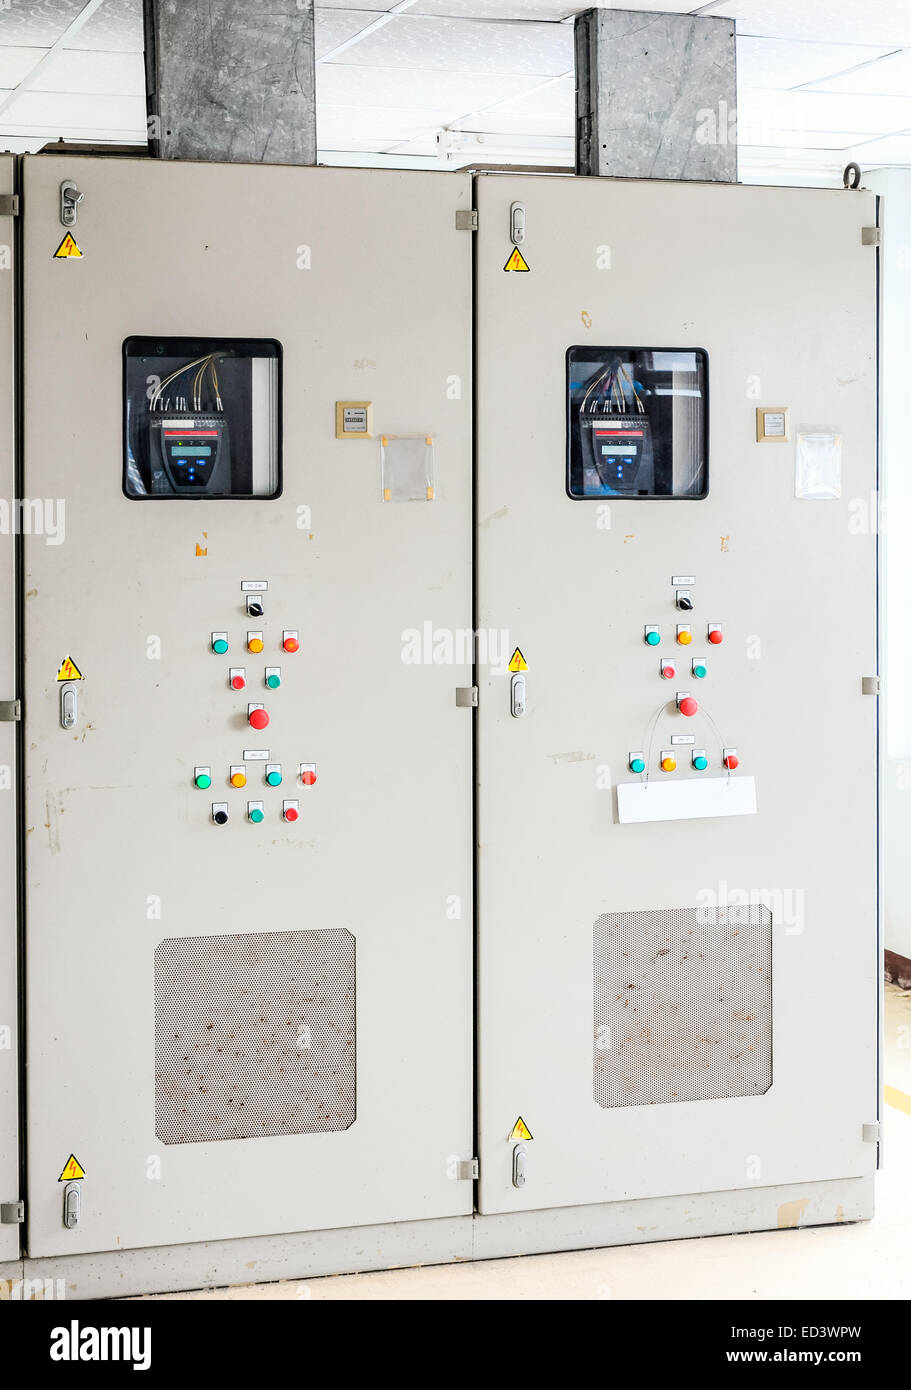 Power control box in the waterwork house Stock Photo: 76918097 - Alamy